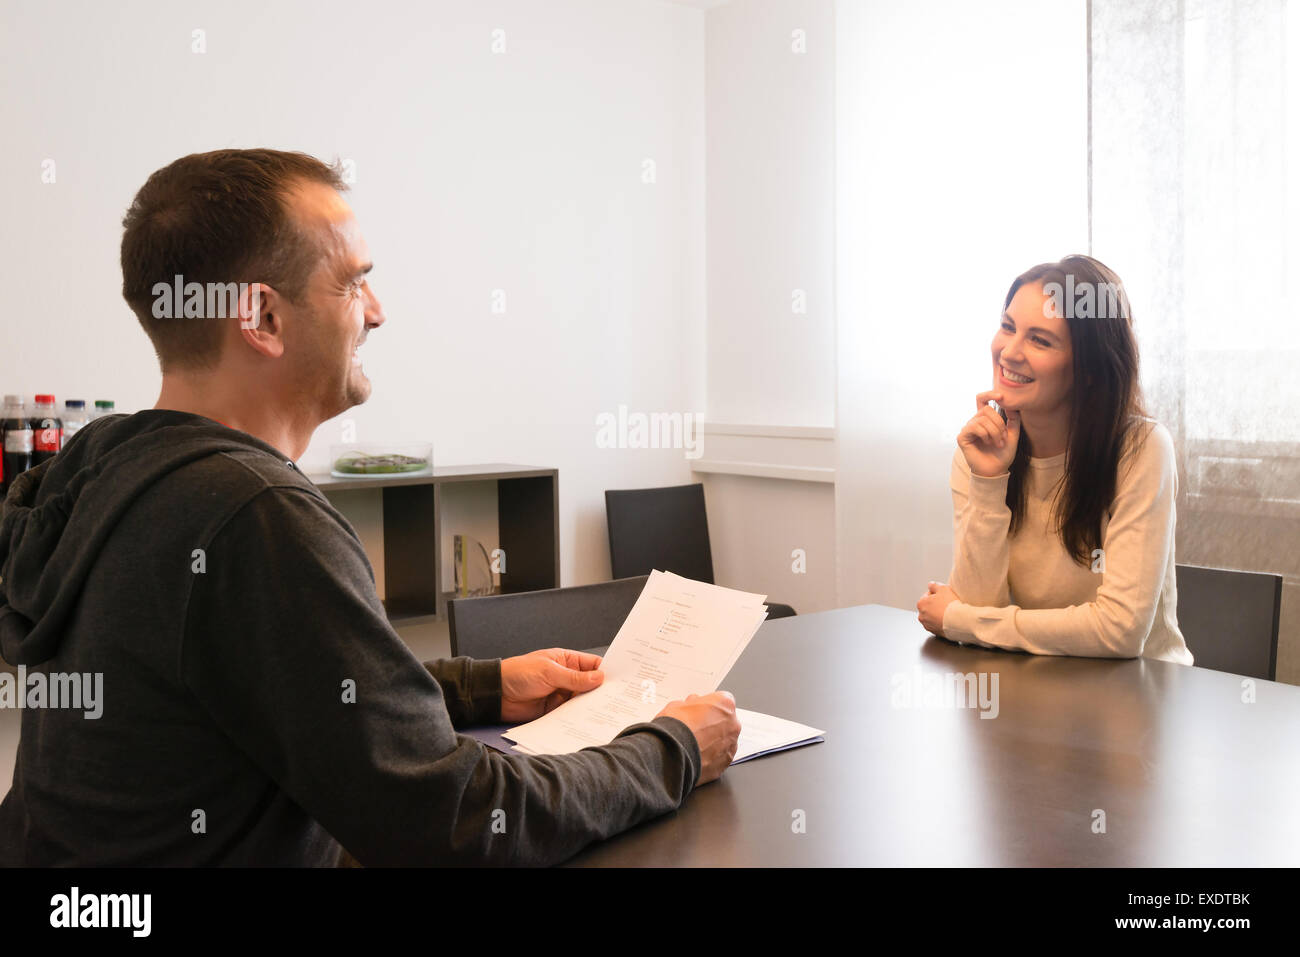 Young female candidate smiling very relaxed during job interview - Stock Image